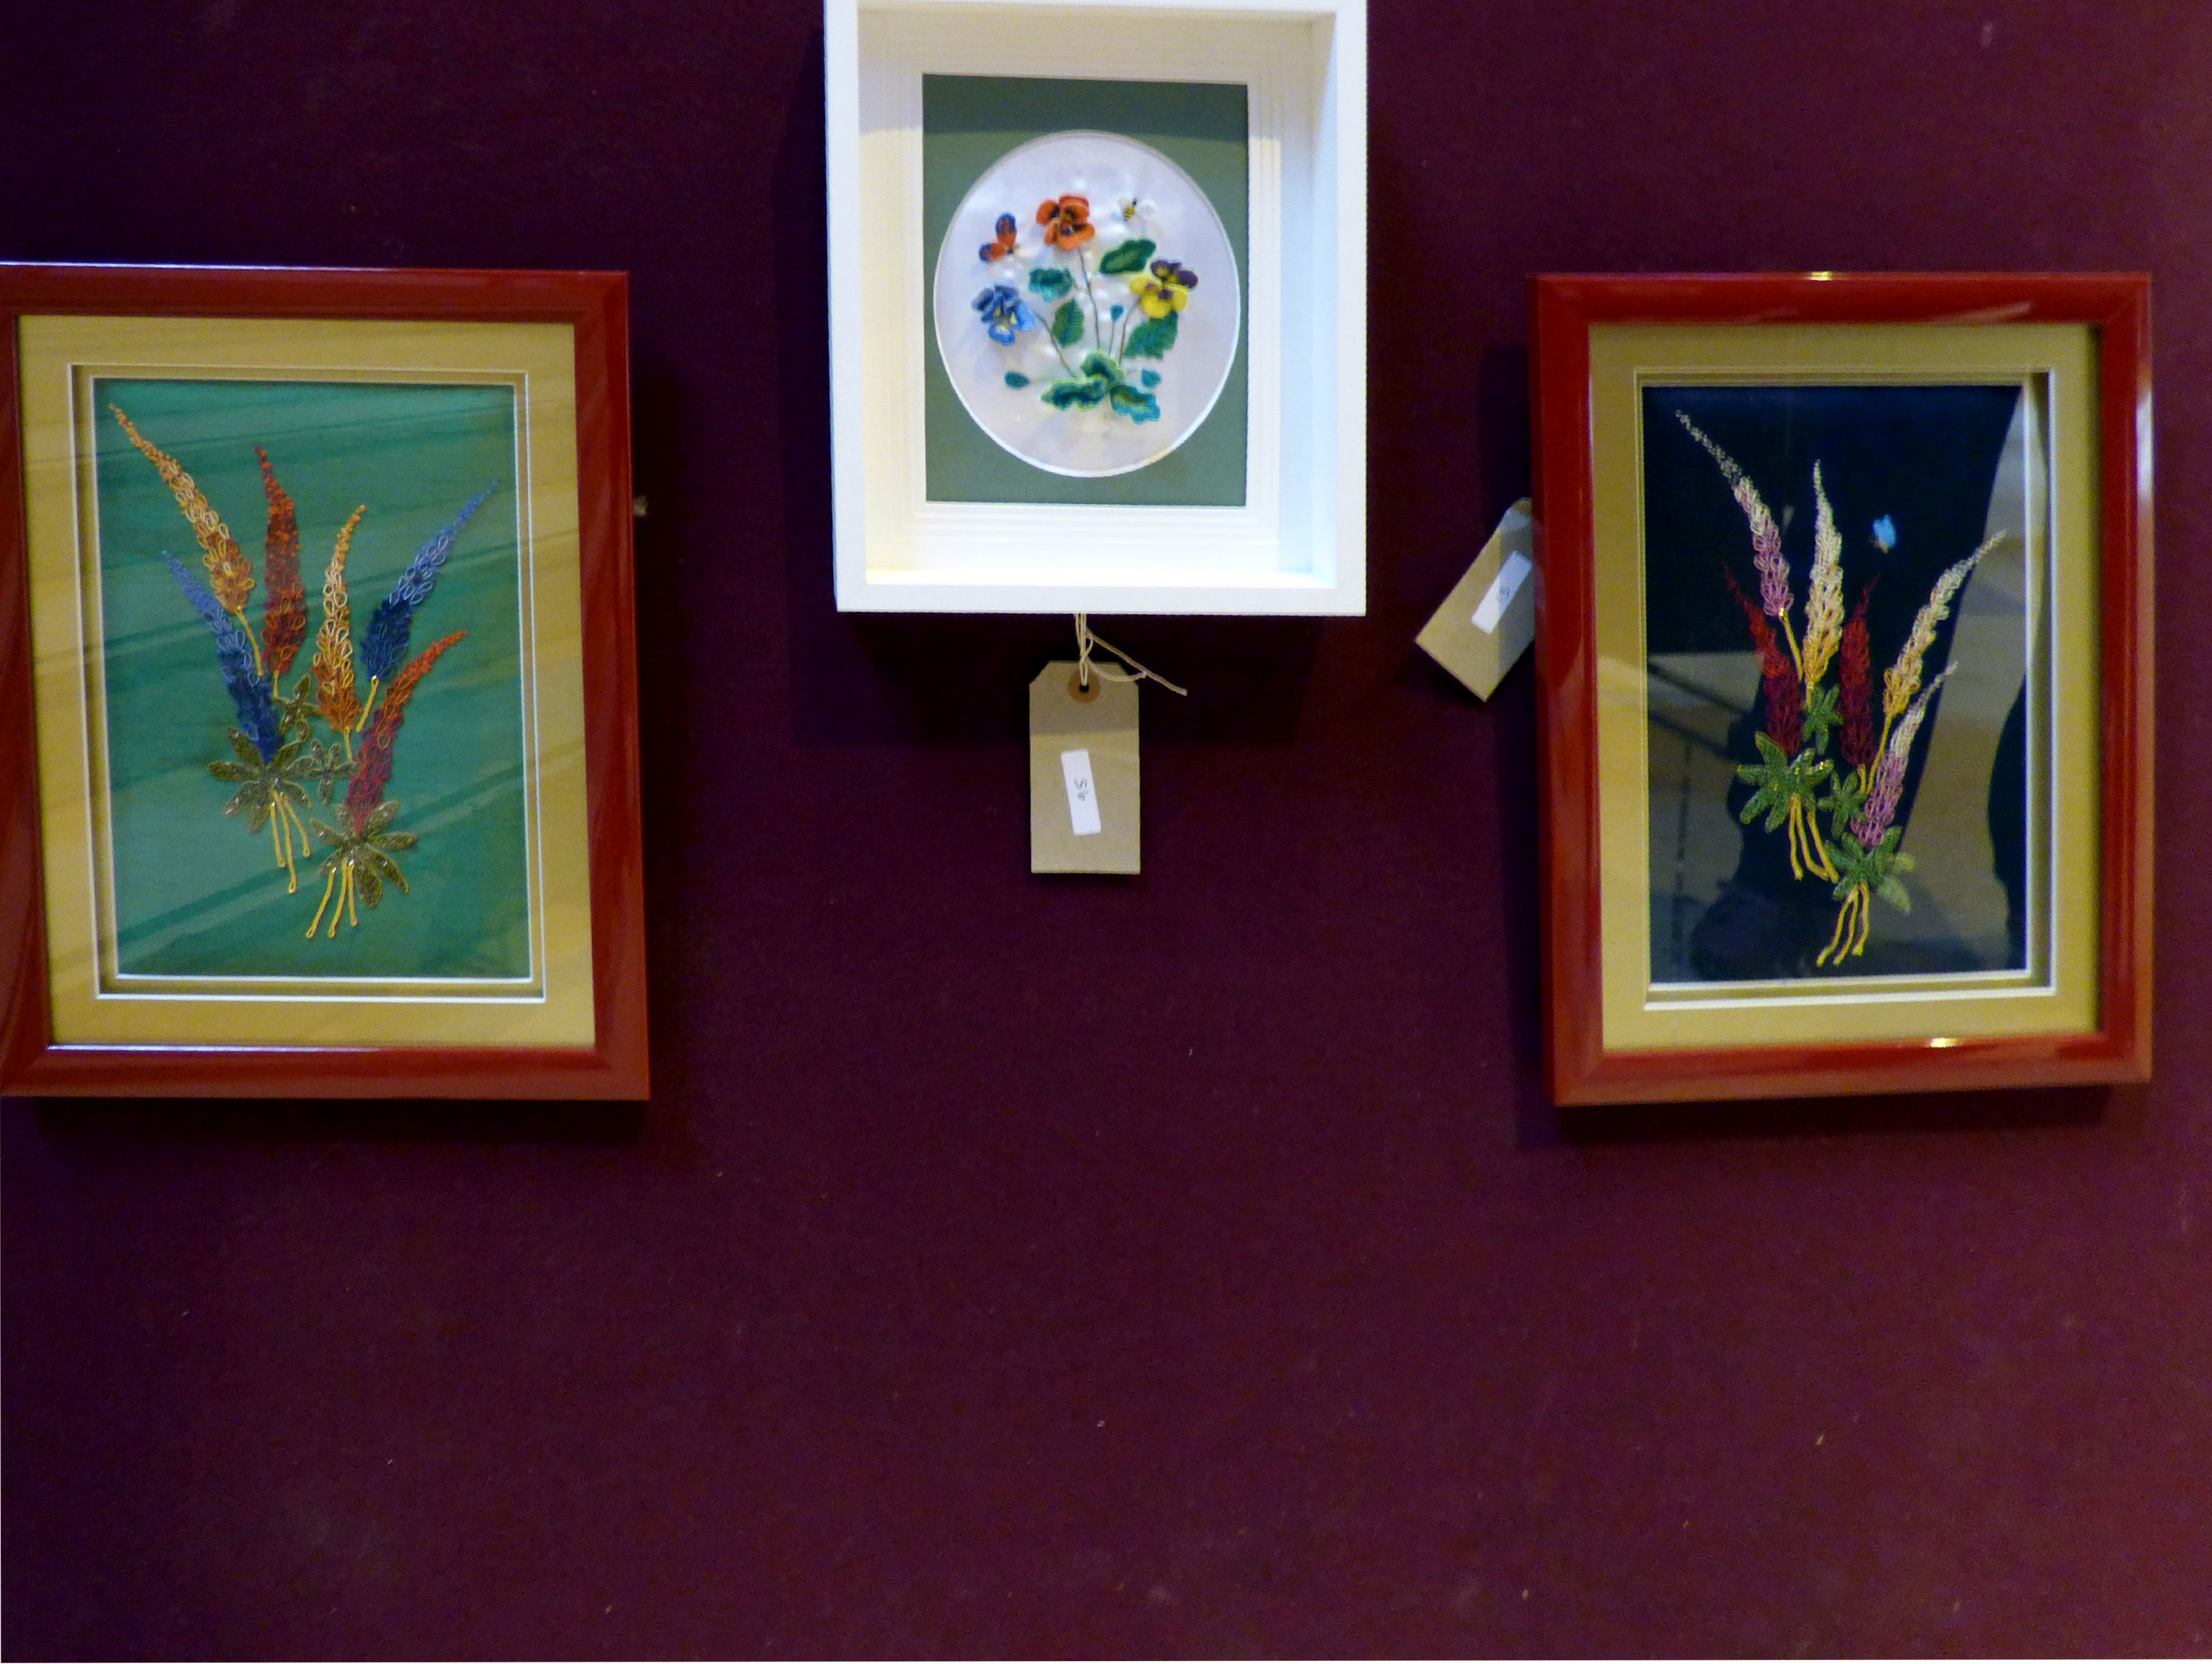 GREEN LUPINS by Vicky Williams, PANSIES by Kathy Green and BLUE LUPINS by Vicky Williams at 60 Glorious Years exhibition 2016